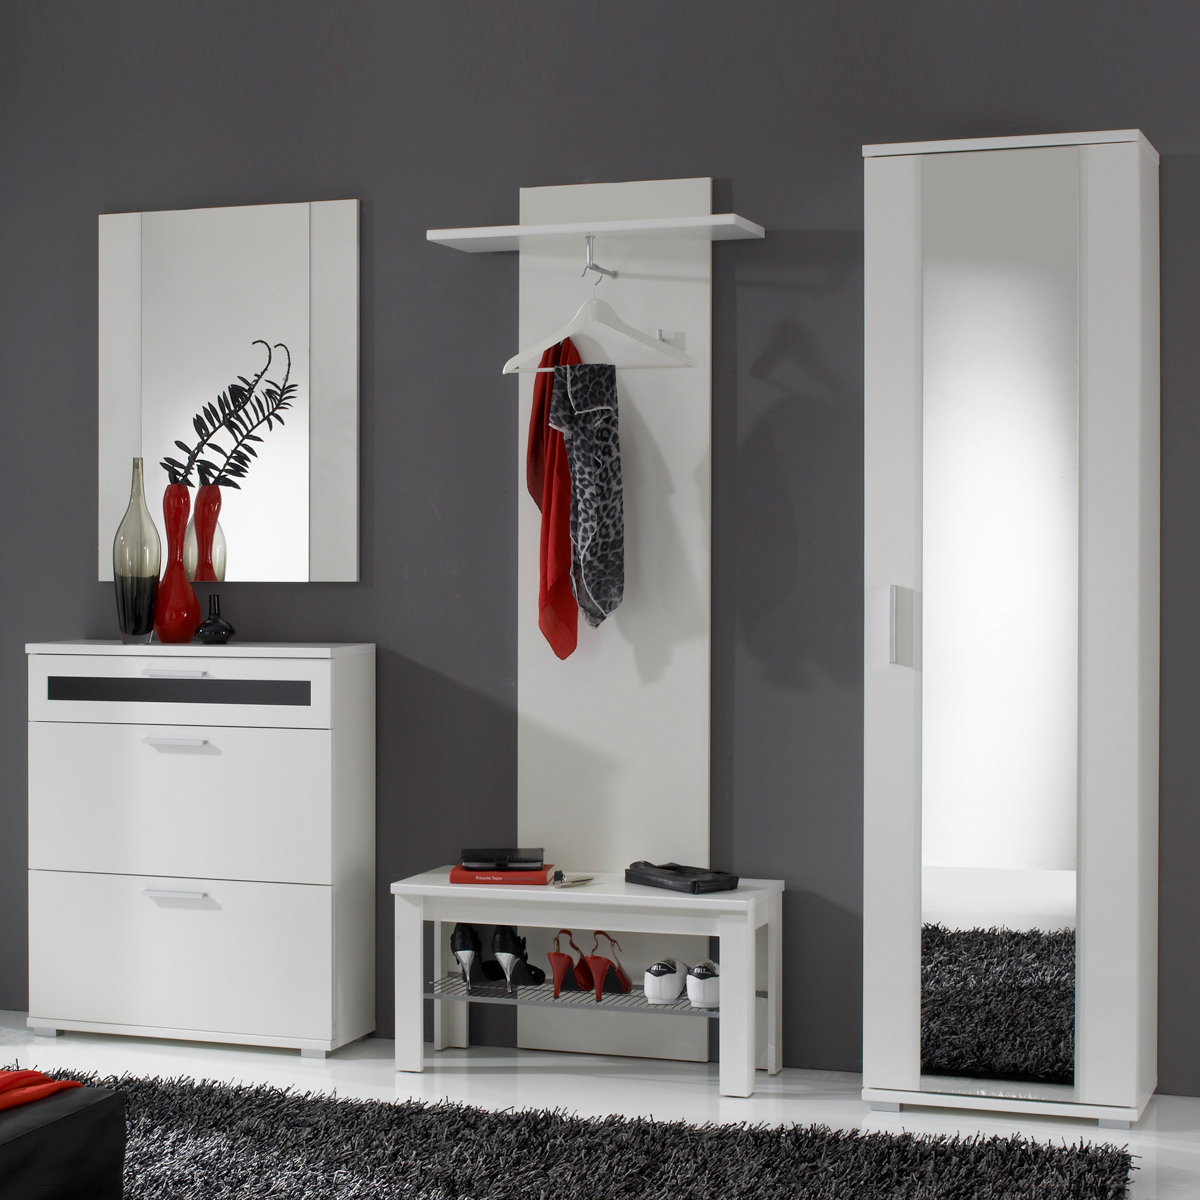 garderobe solido set mit flur schrank schuhkommode wandpaneel schuhbank in wei. Black Bedroom Furniture Sets. Home Design Ideas